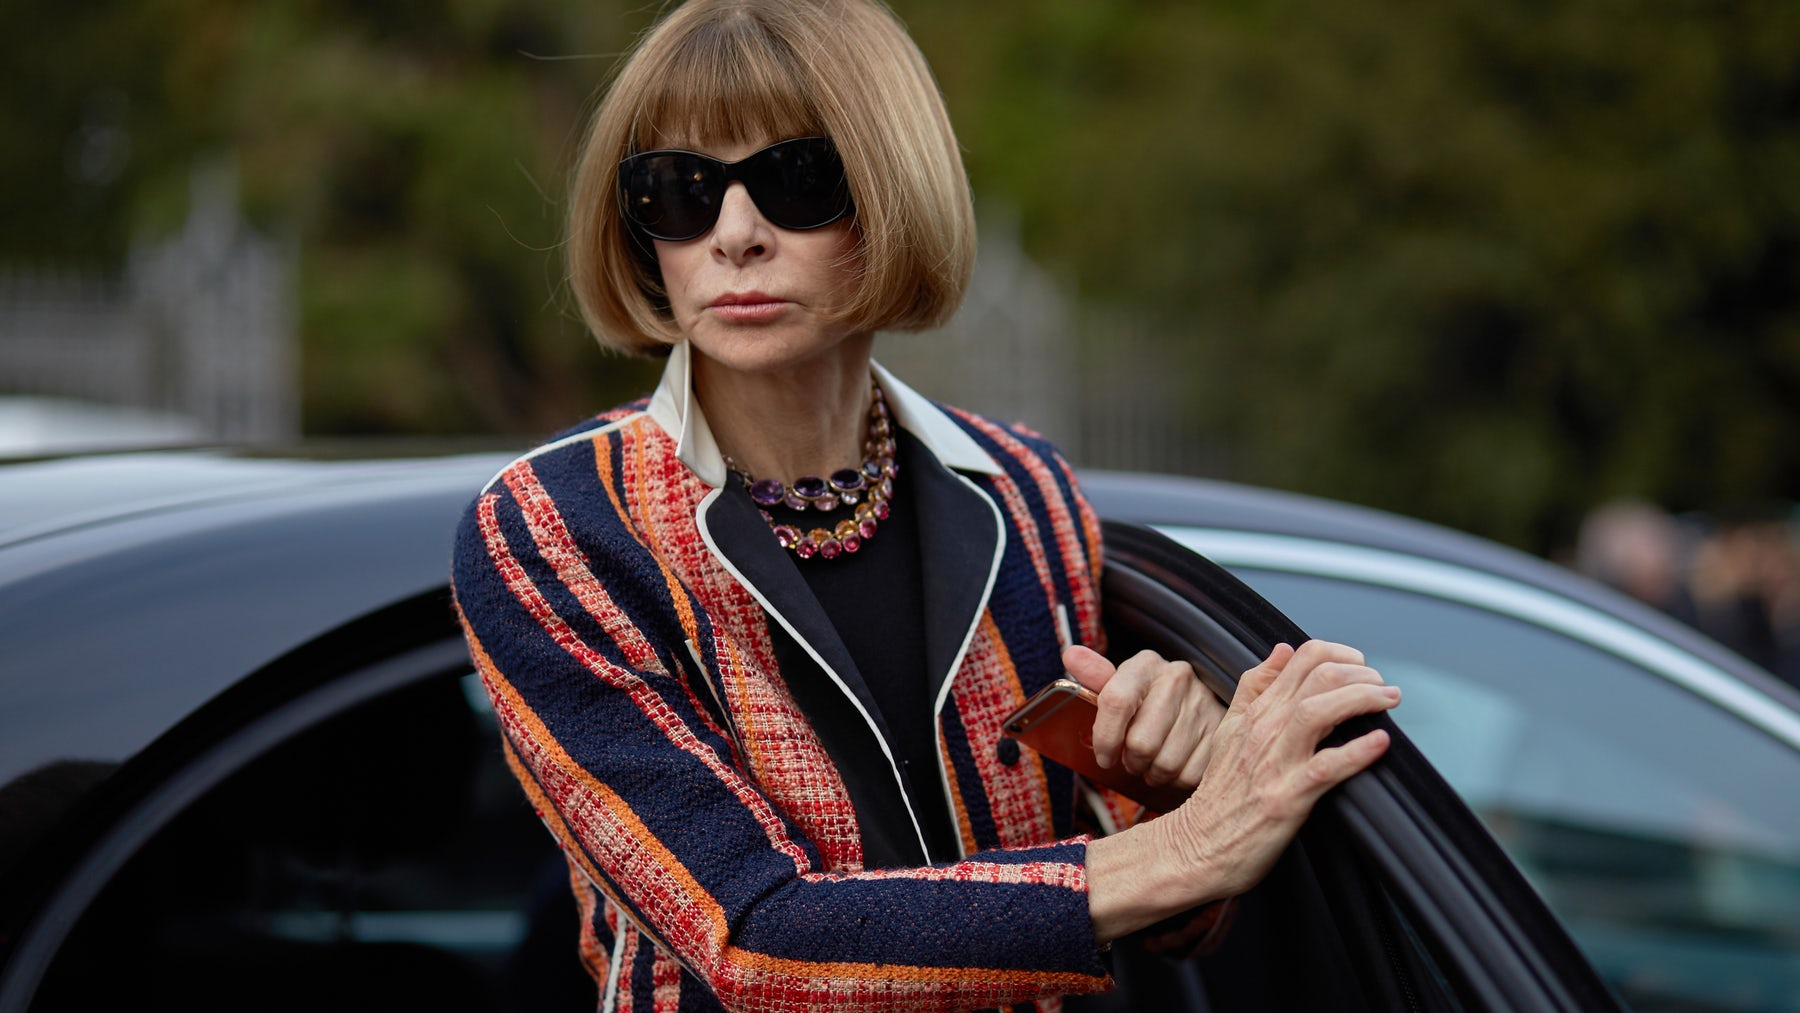 Anna Wintour | Source: Shutterstock